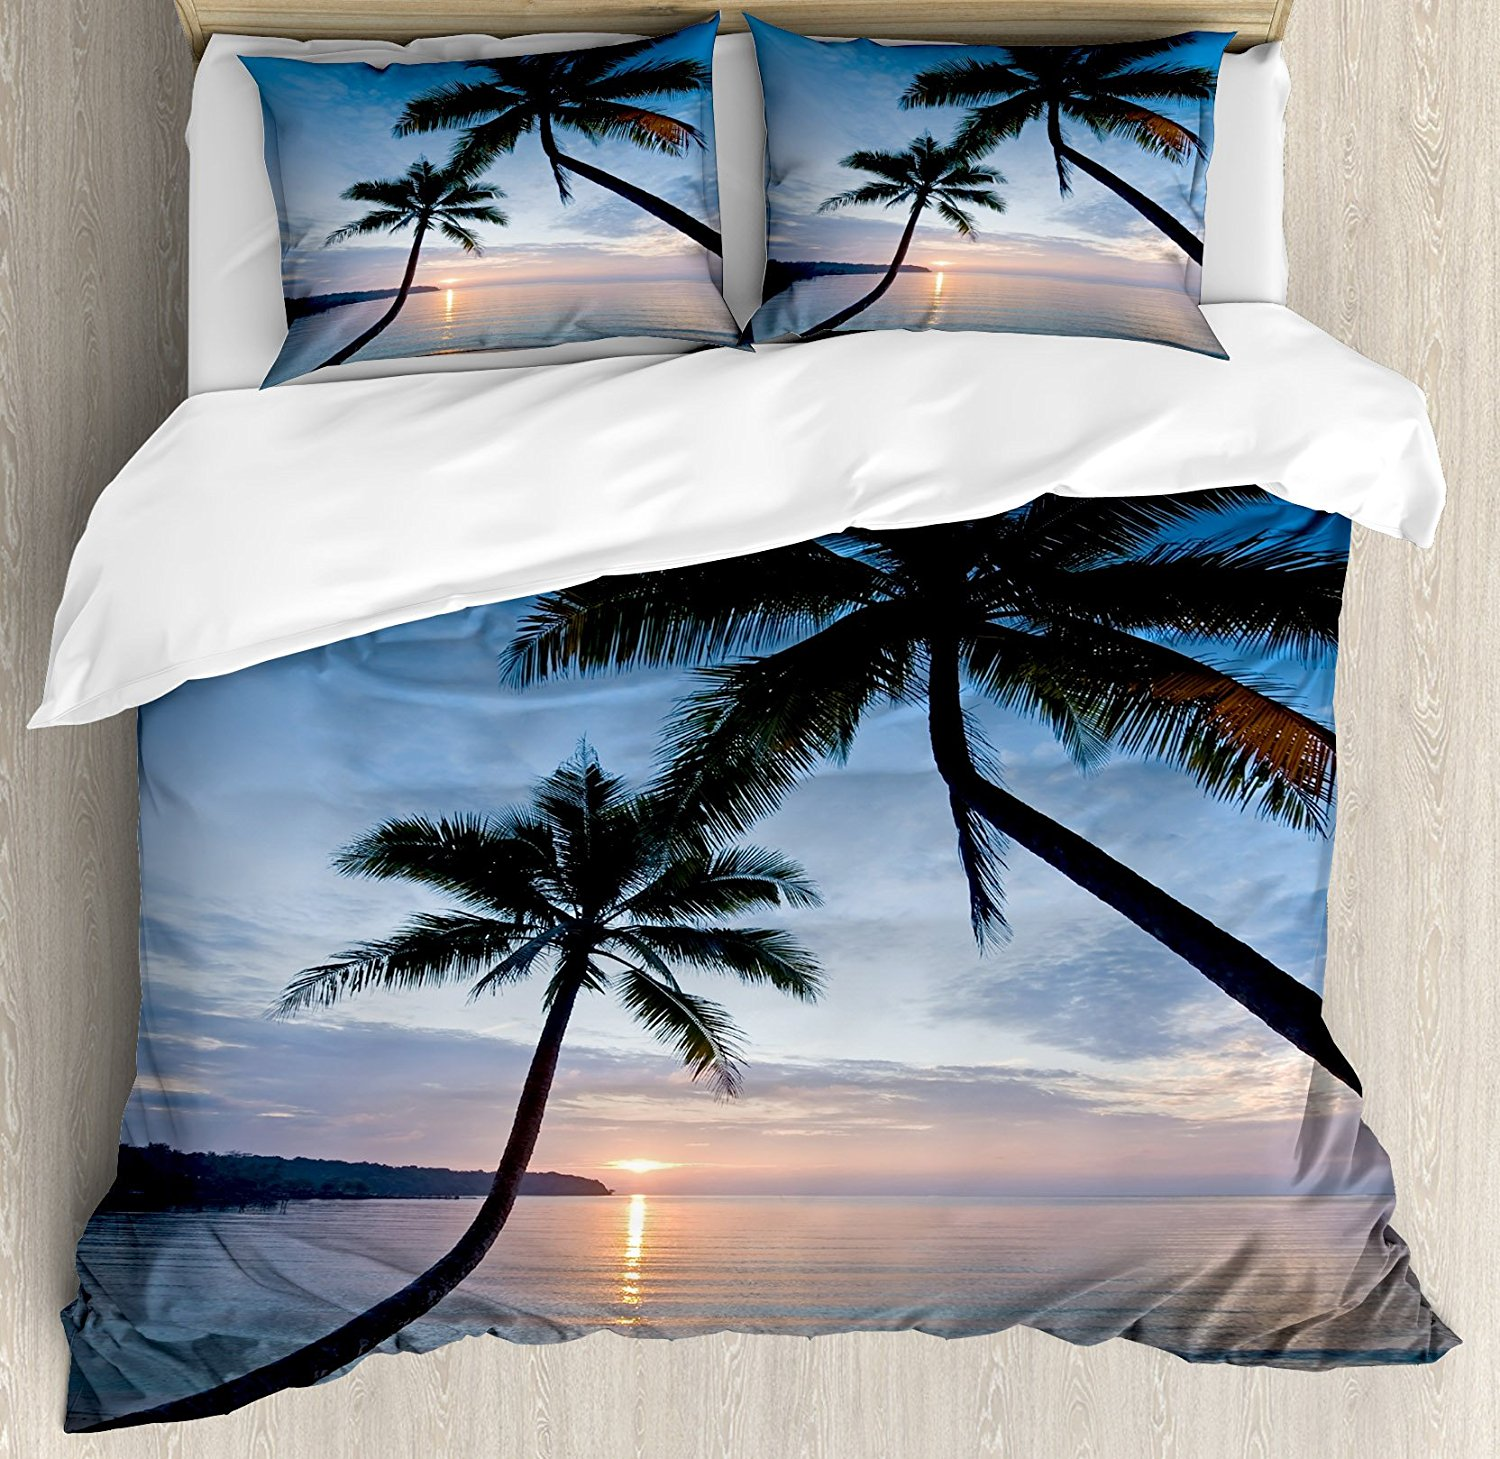 Tropical Duvet Cover Set, Sunset over Ocean Calm Exotic Beach in Kut Island Thailand Summertime, 4 Piece Bedding Set